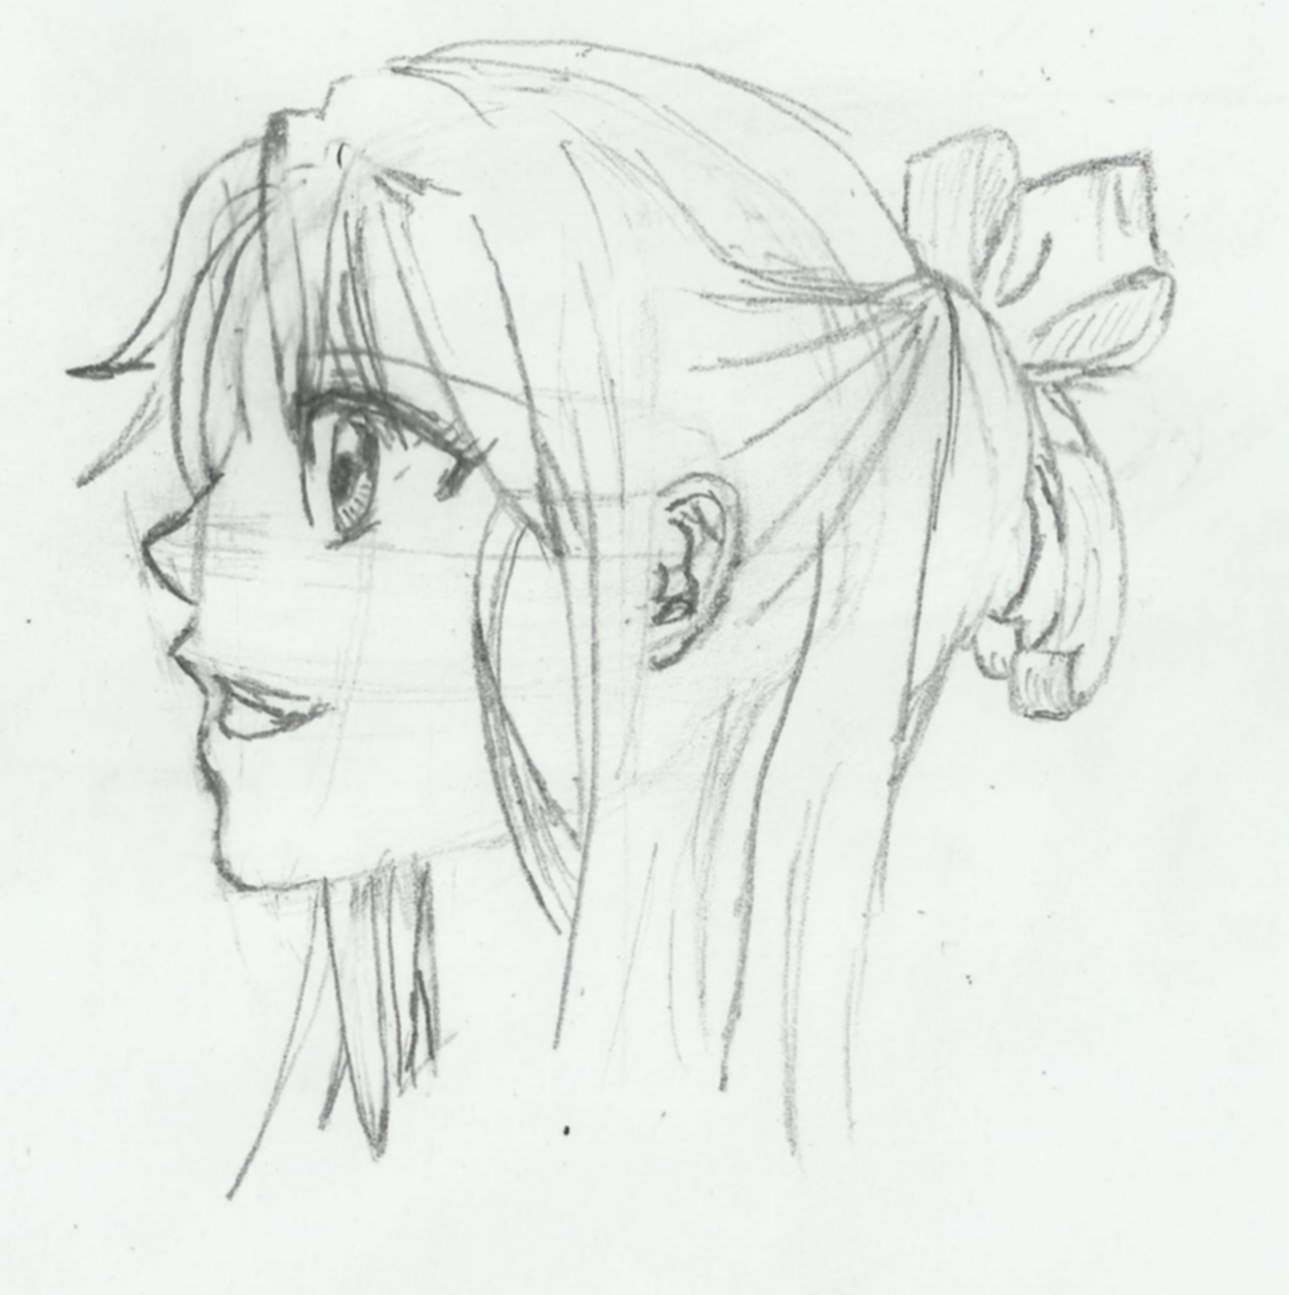 manga practice girls face side view by cejnarm on